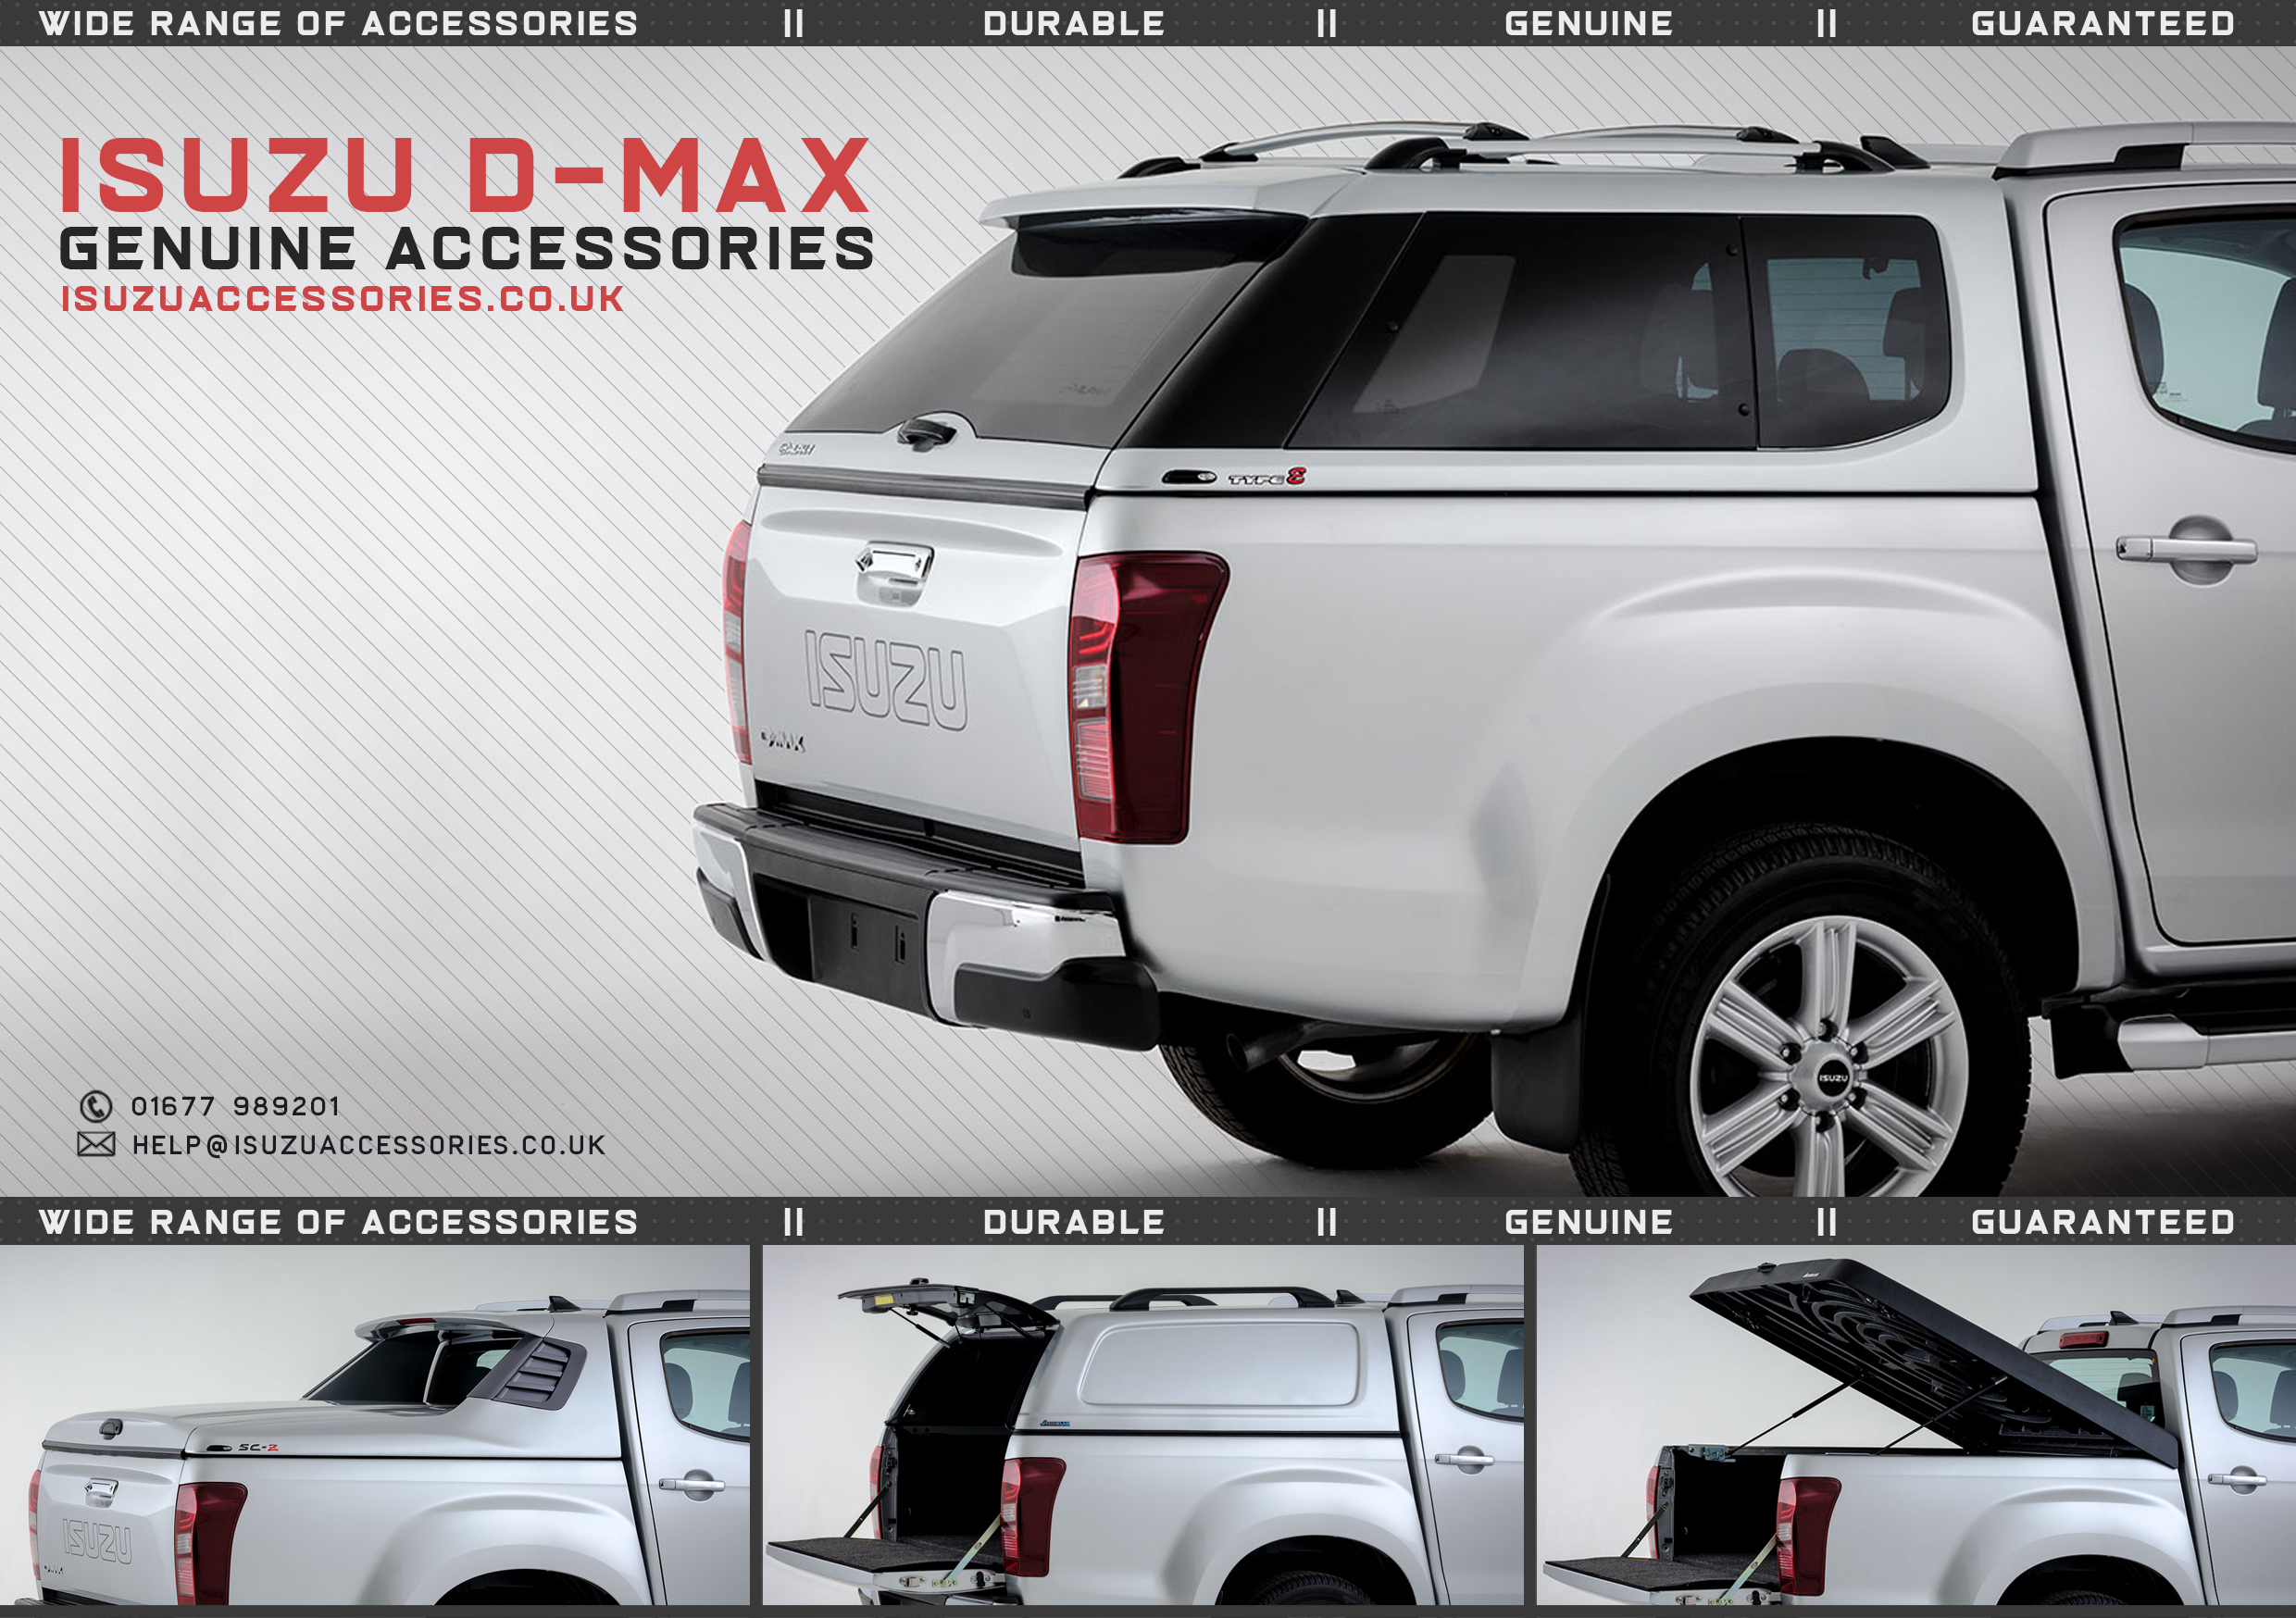 Isuzu D-Max Accessories - Brochure Download